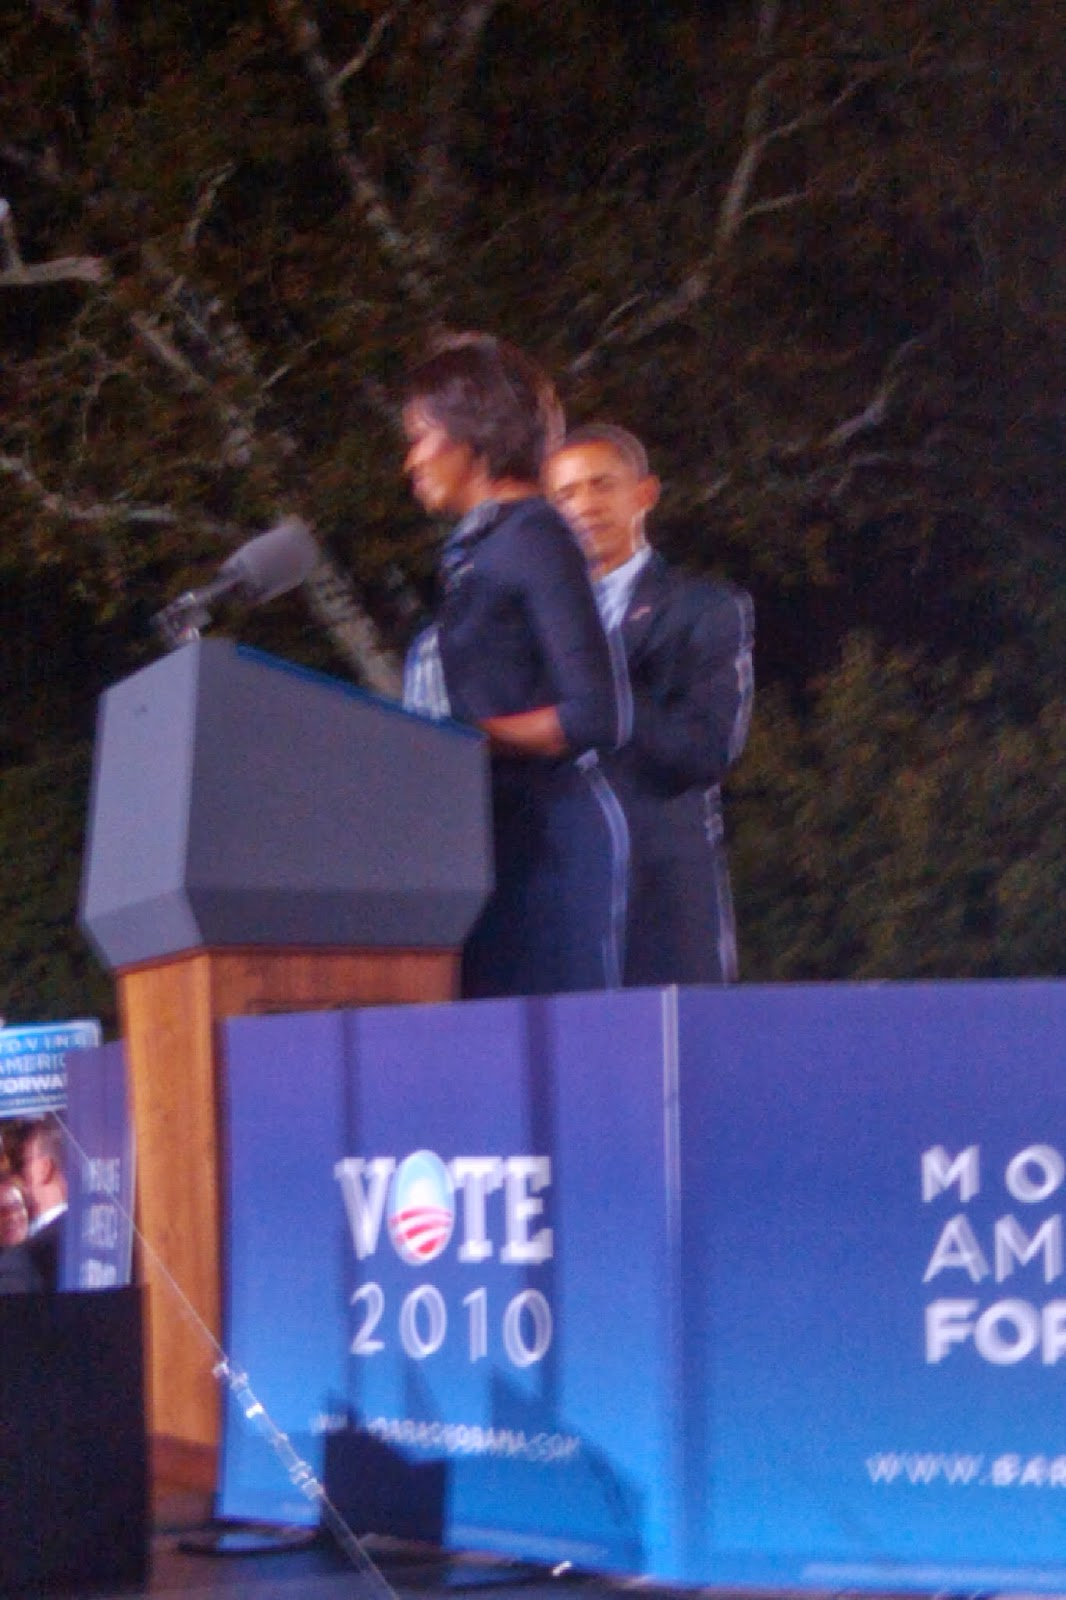 The President and First Lady in Ohio 2010